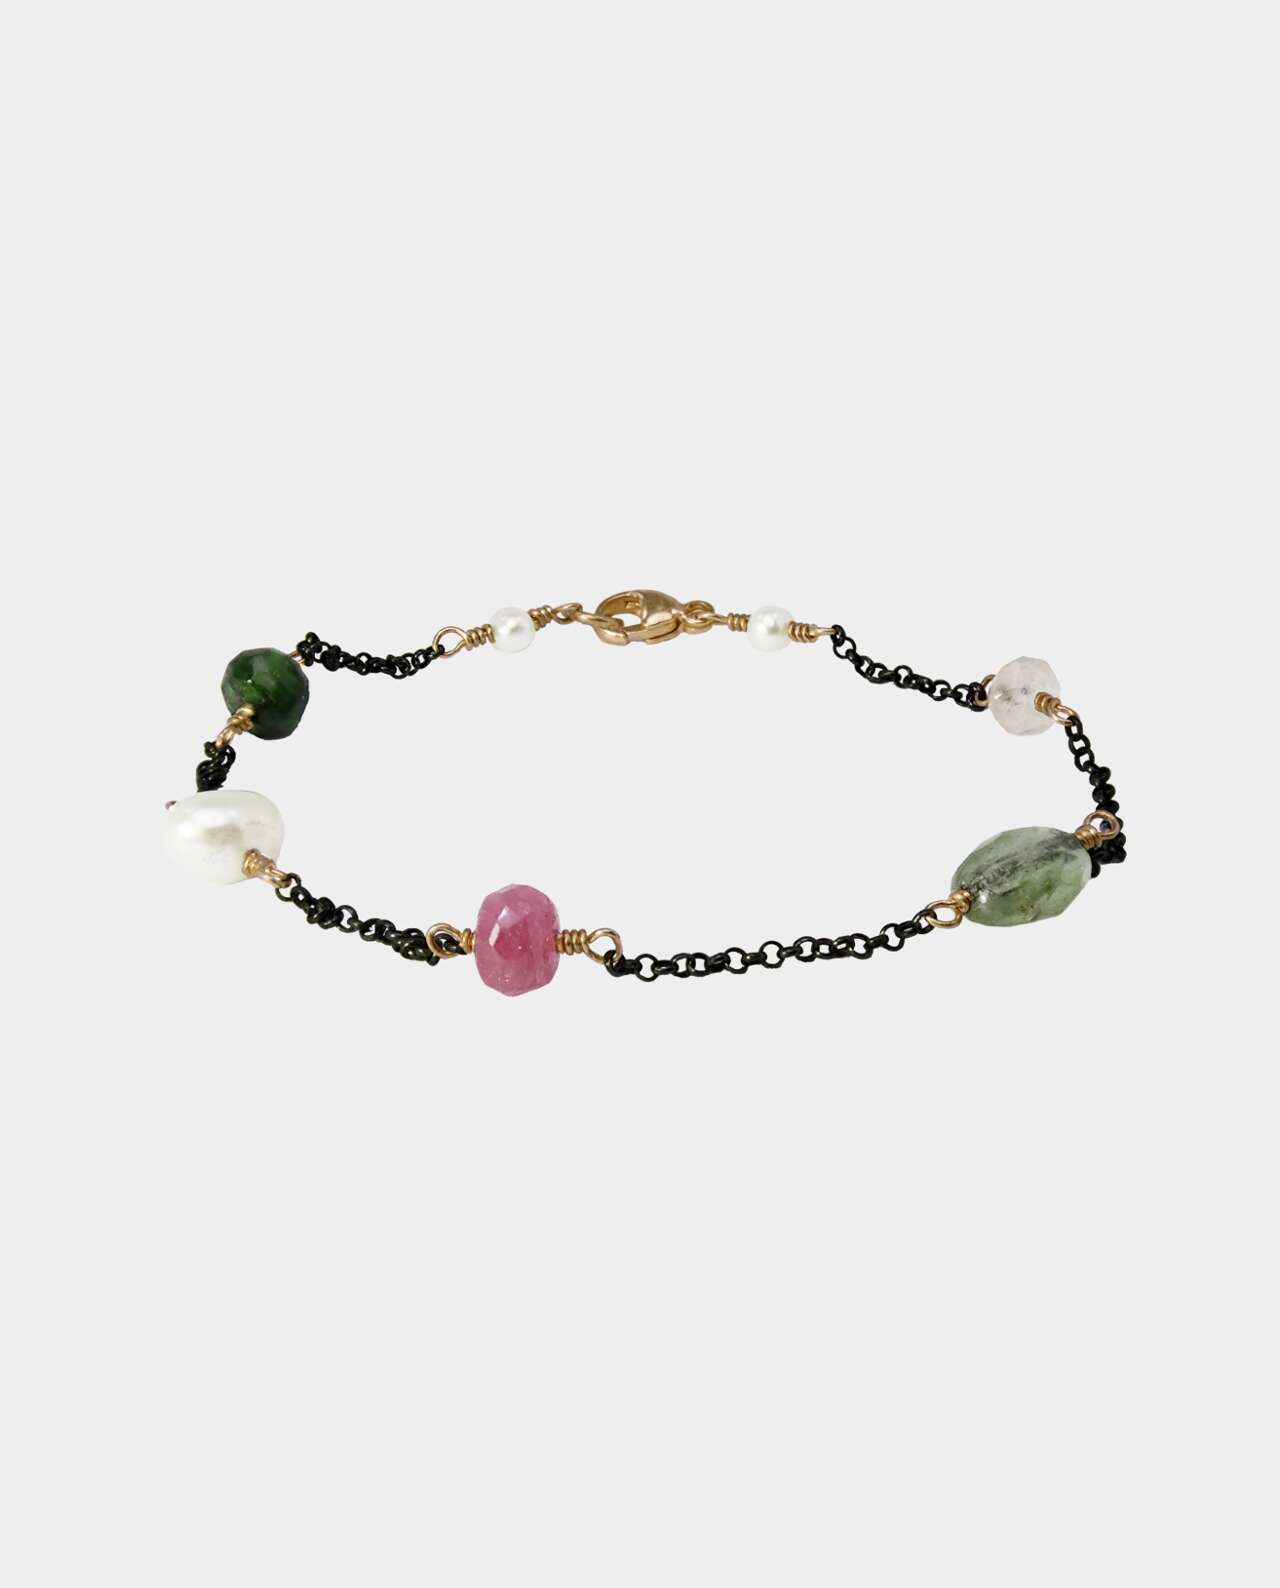 Handmade bracelet with tourmaline, garnet and freshwater pearl that creates a spectrum of color and gives your look a touch of elegance